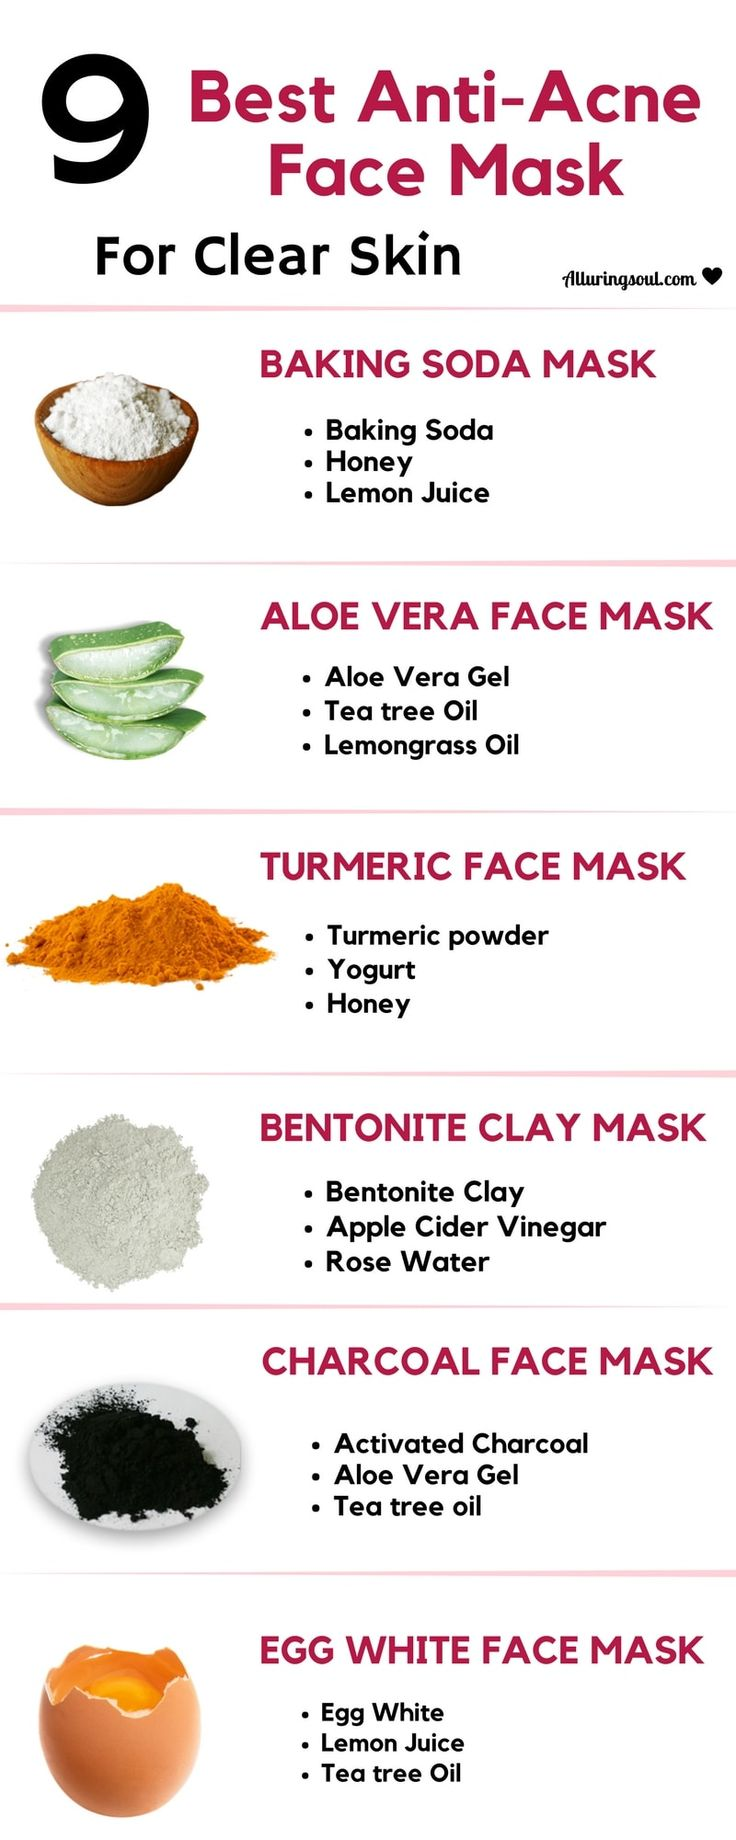 acne face mask will help to remove acne, redness and soothe skin. It help to get rid of problems without any side effects.